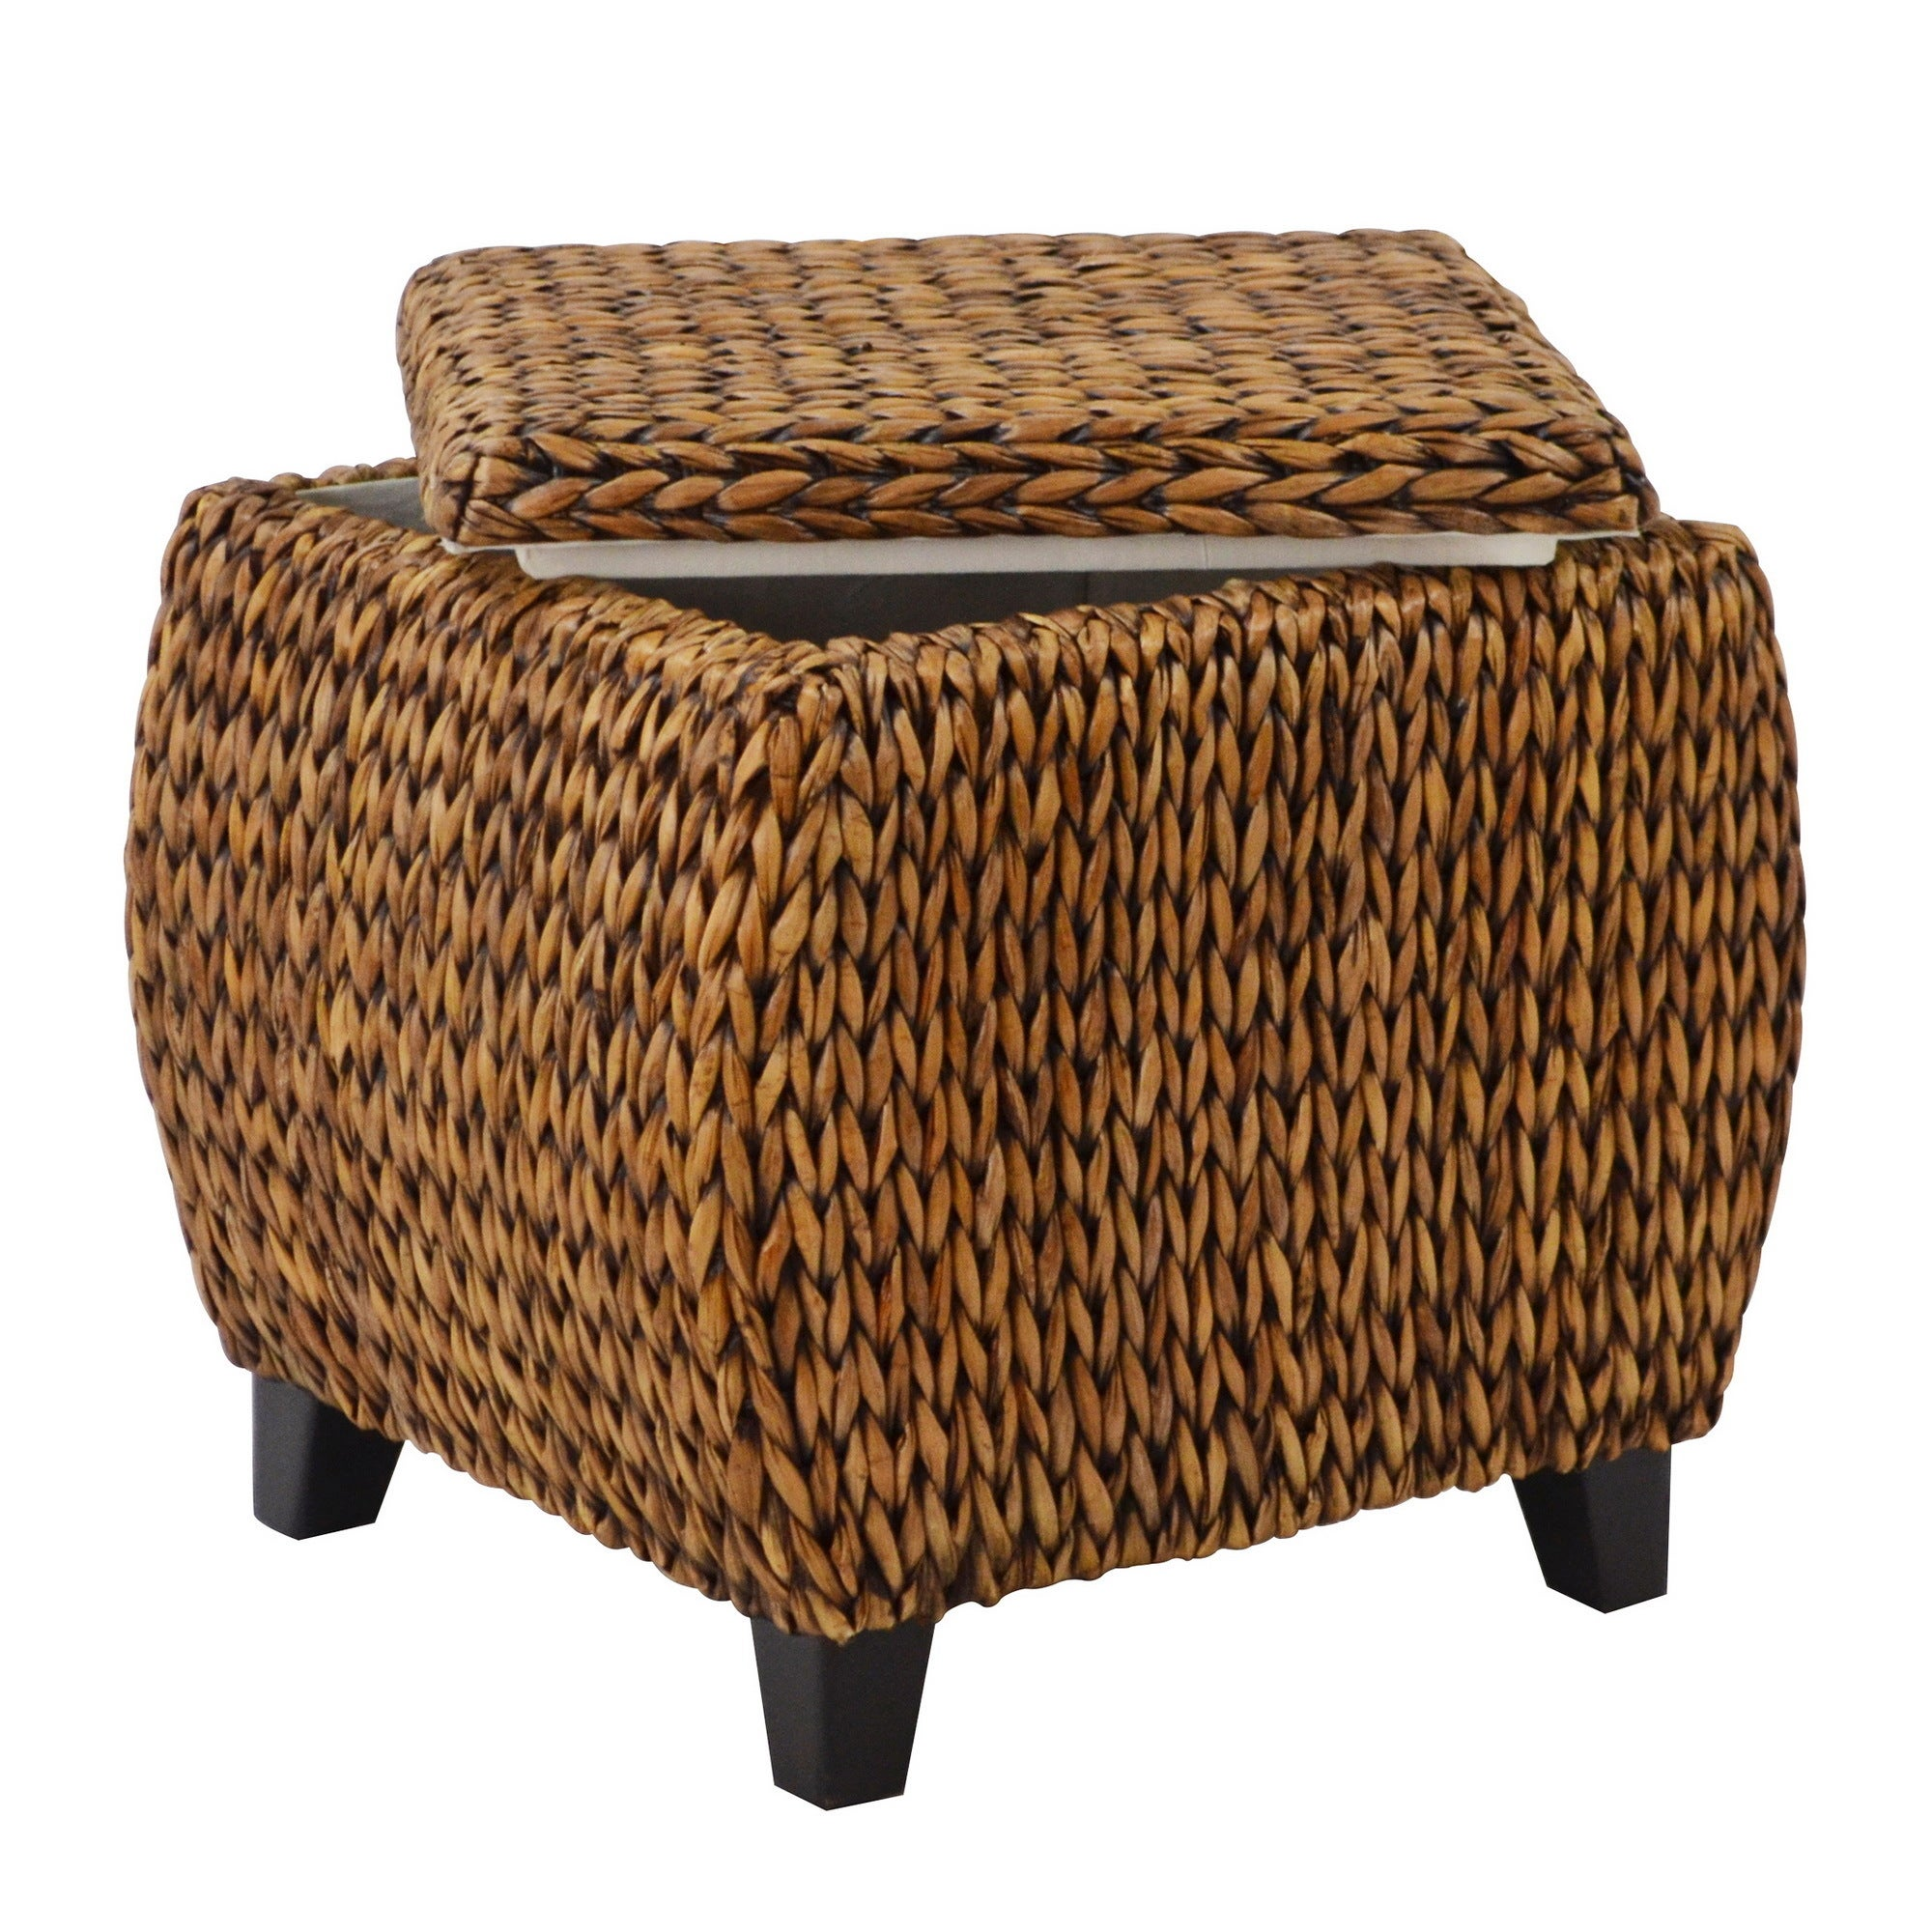 Shop Havenside Home Eastport Round Storage Ottoman   Free Shipping Today    Overstock.com   20931380